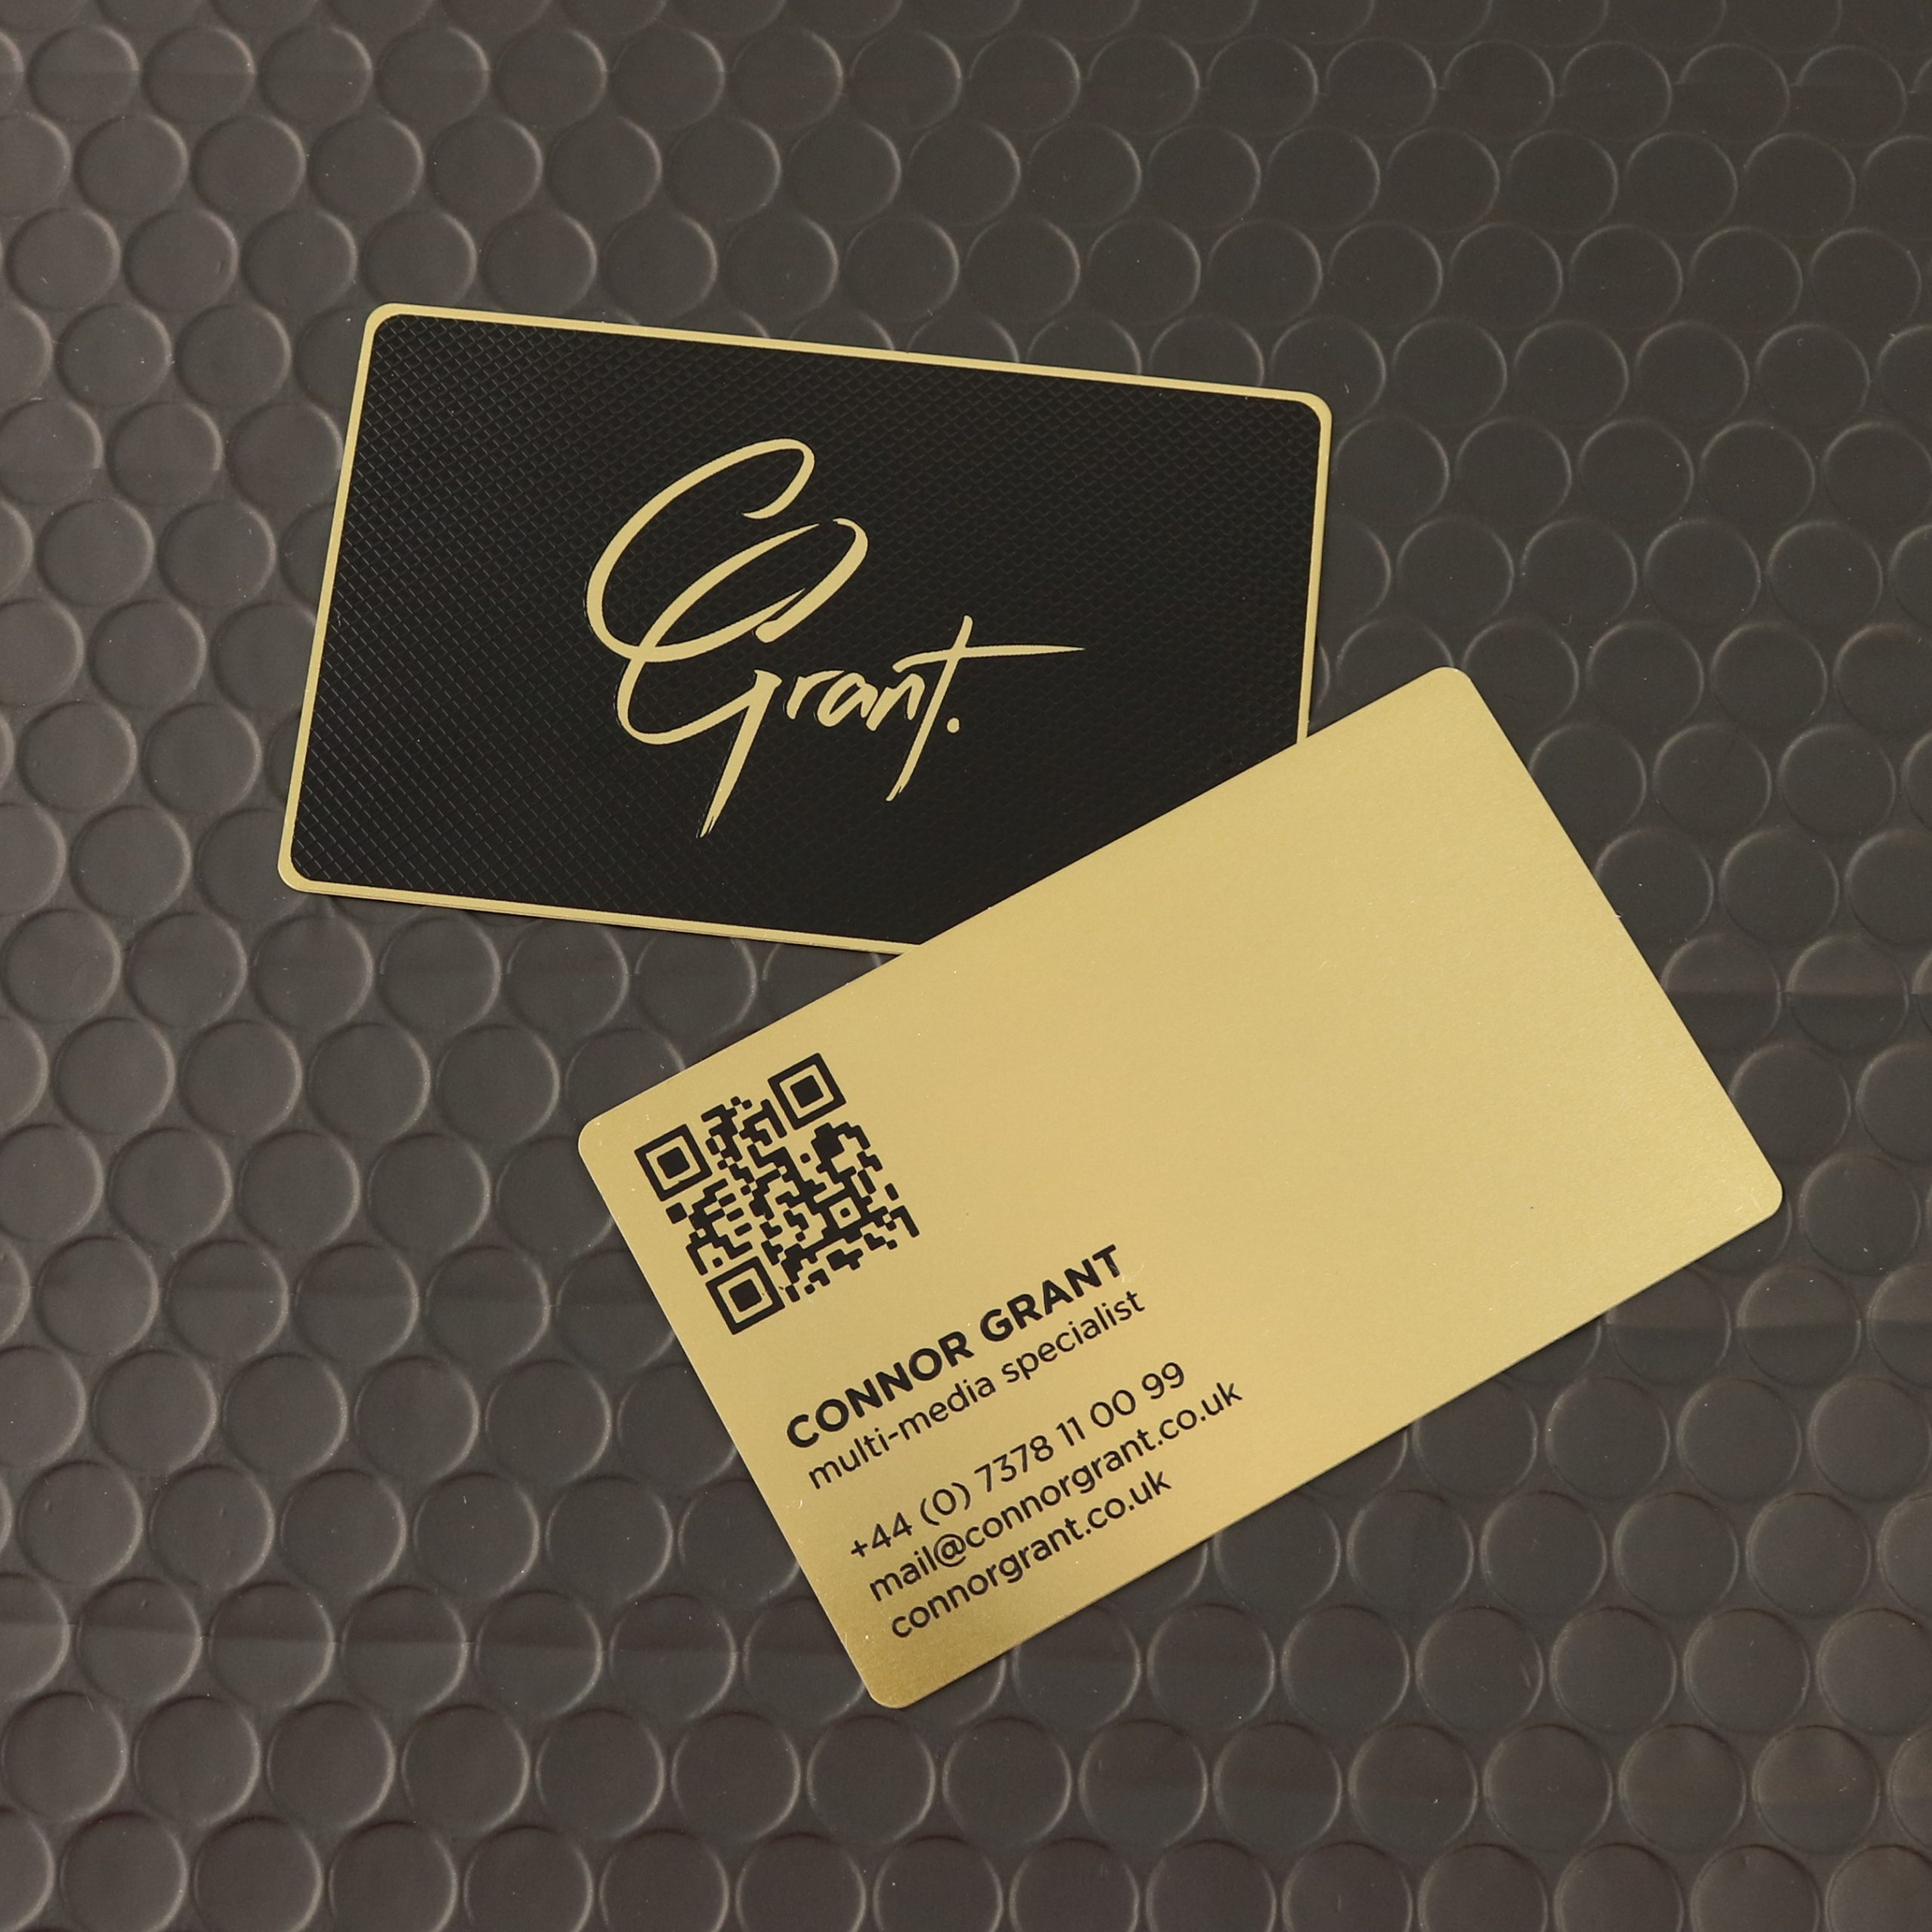 Connor Grant Metal Business Cards